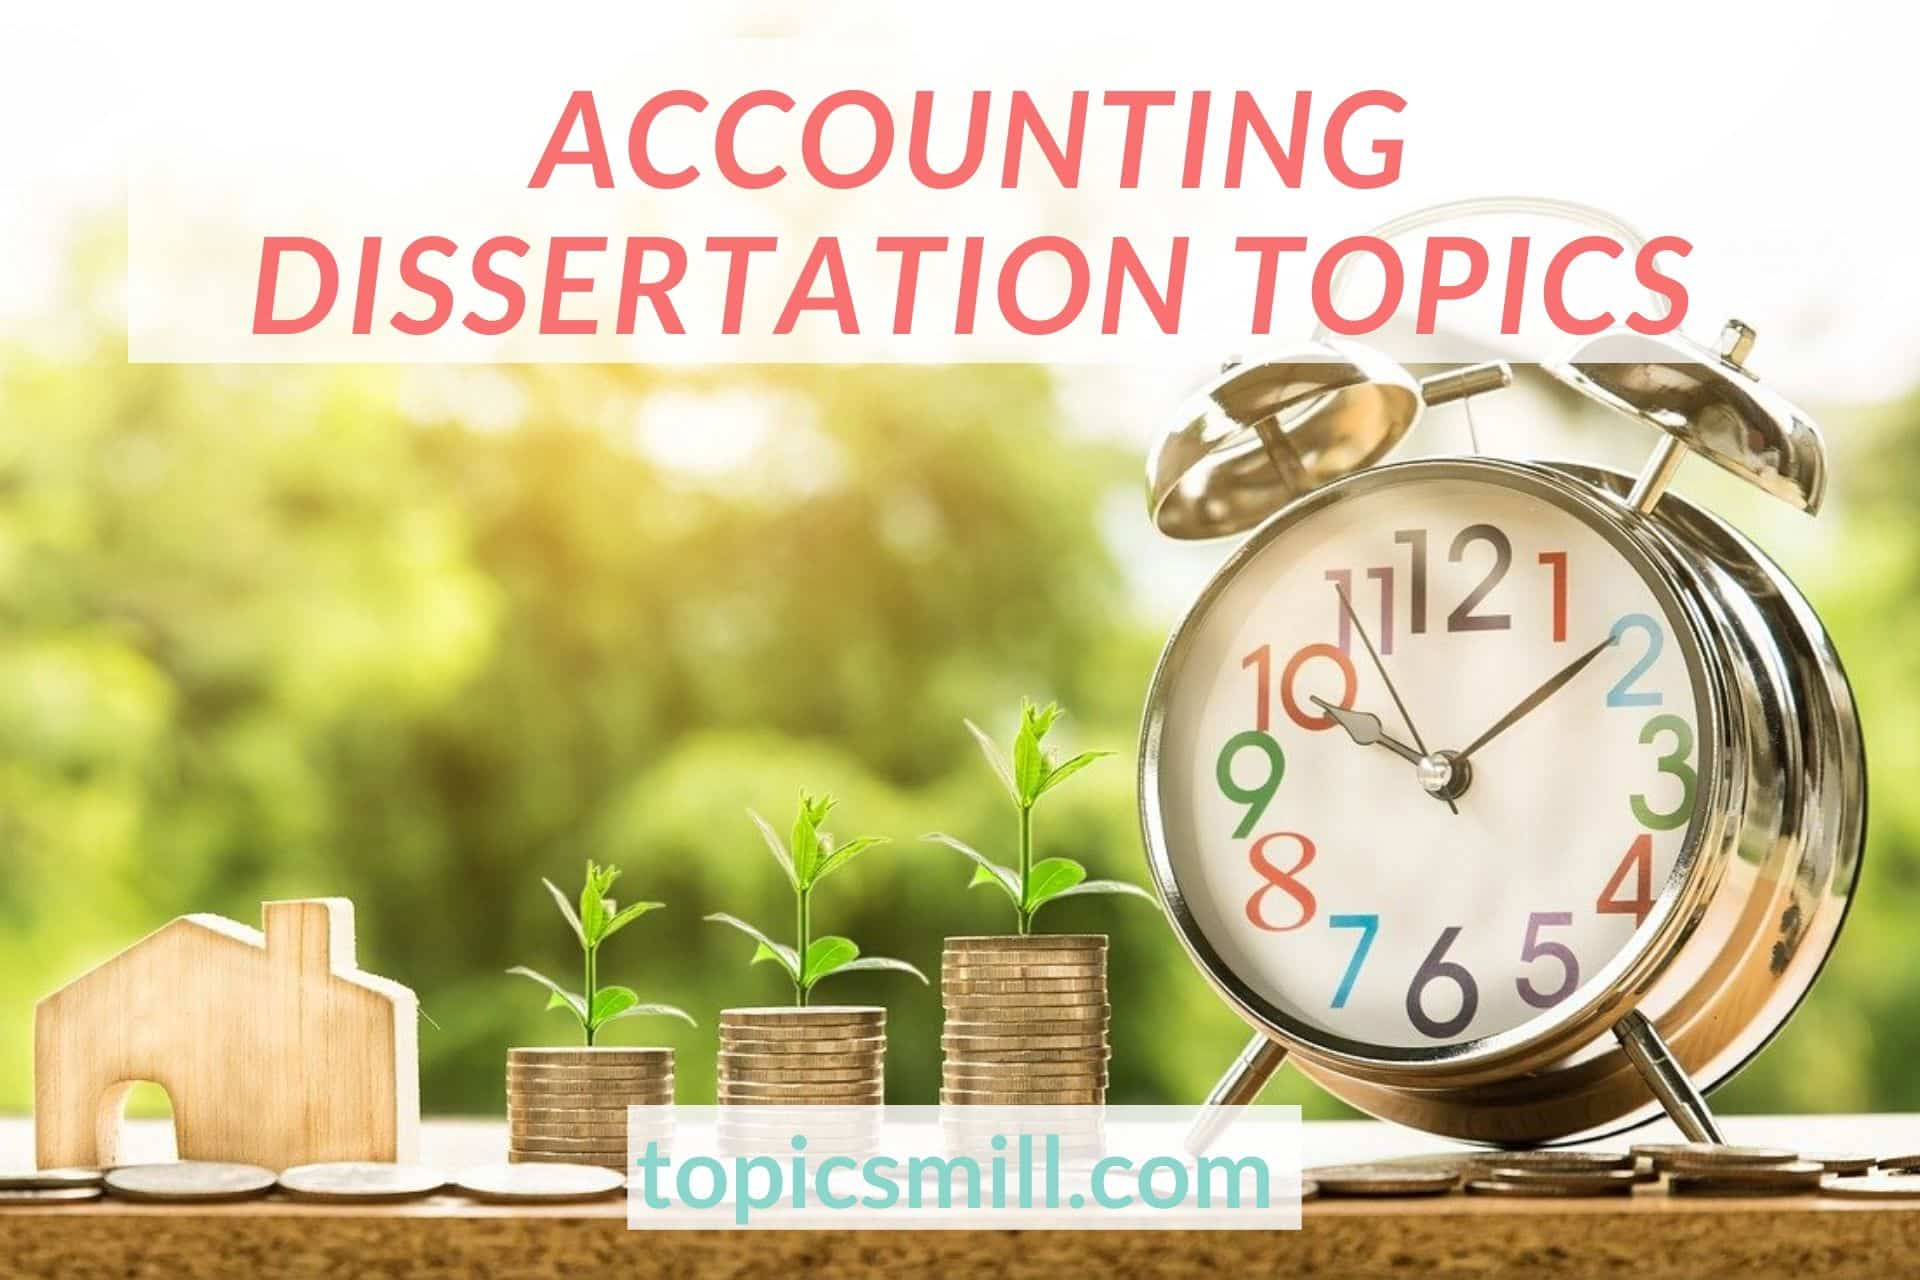 Accounting dissertation ideas essay on going to college